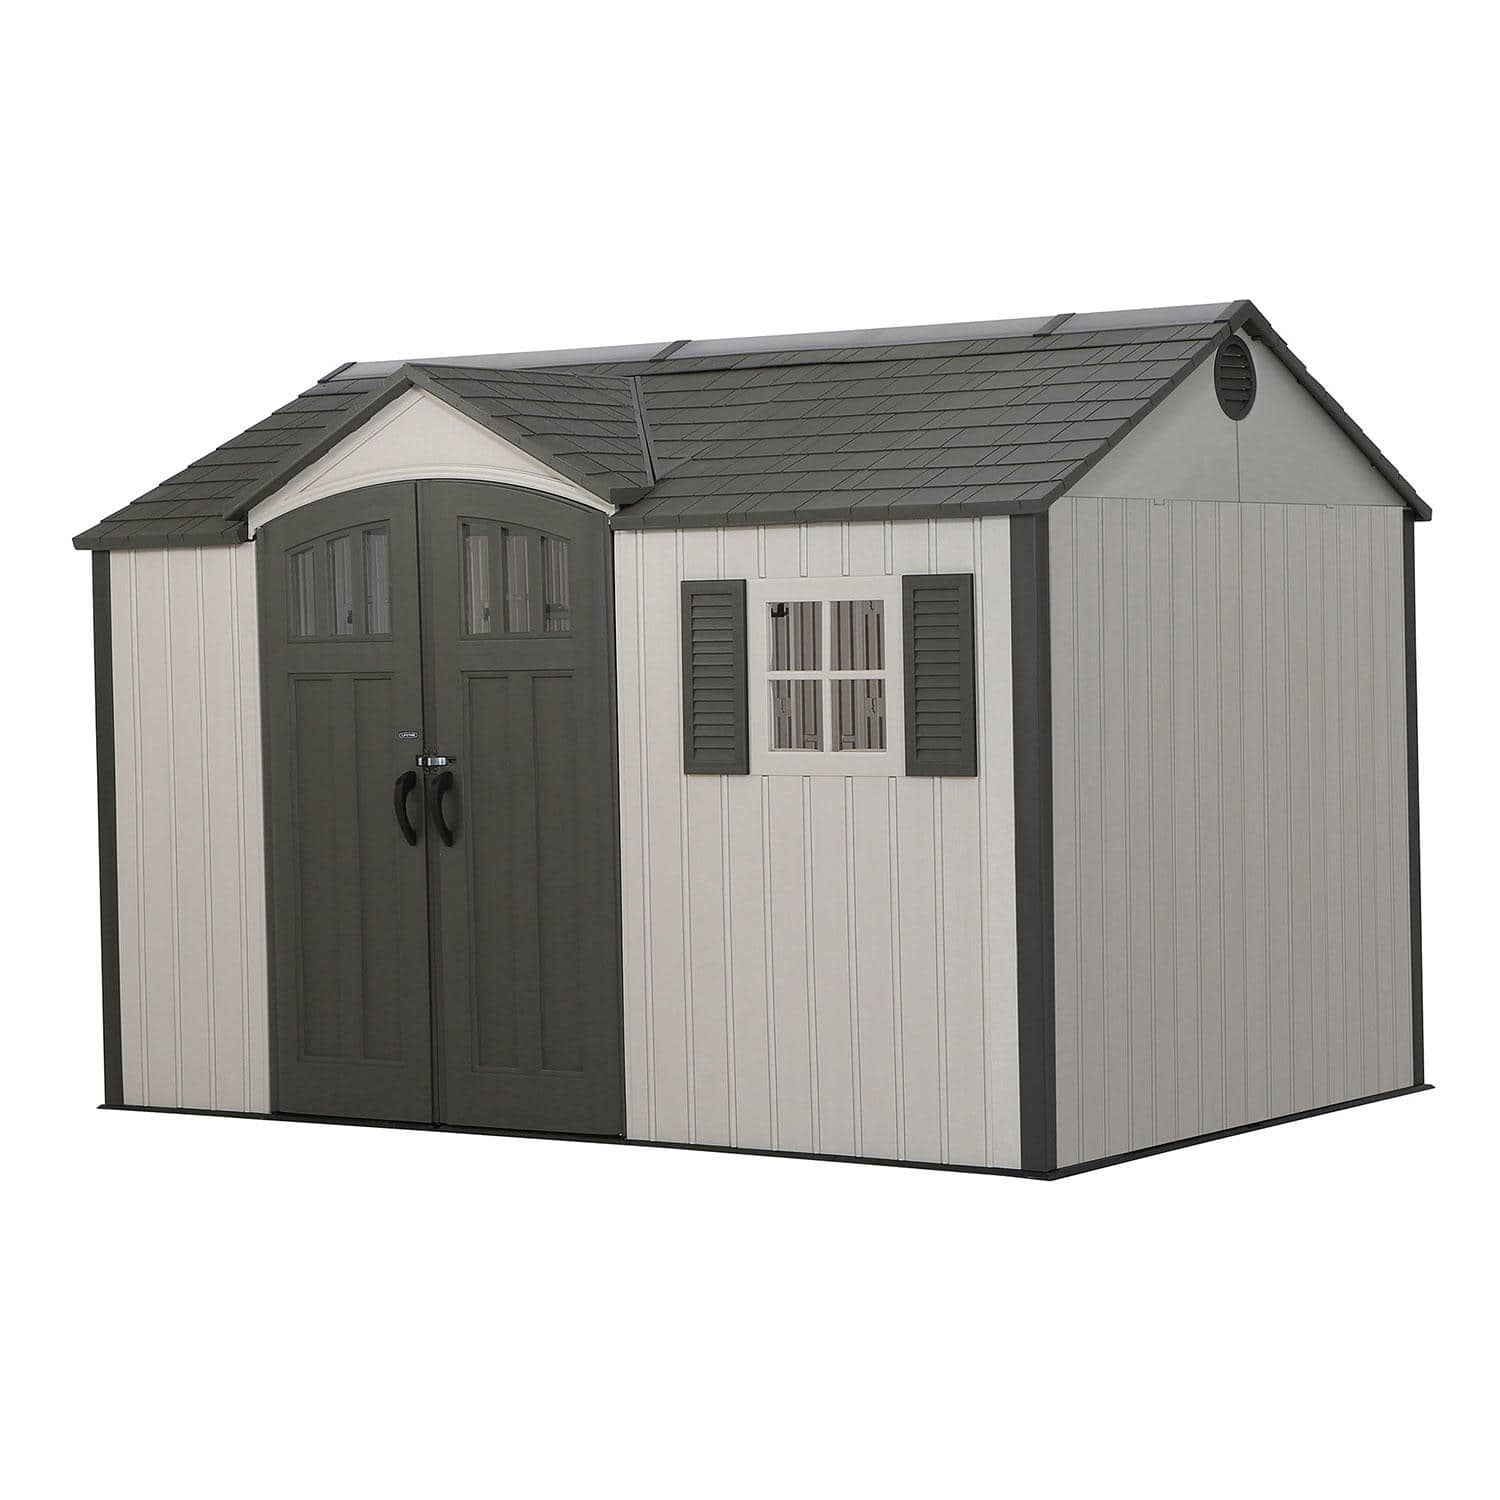 Sam's Club Members: Lifetime 12.5' x 8' Outdoor Storage Shed